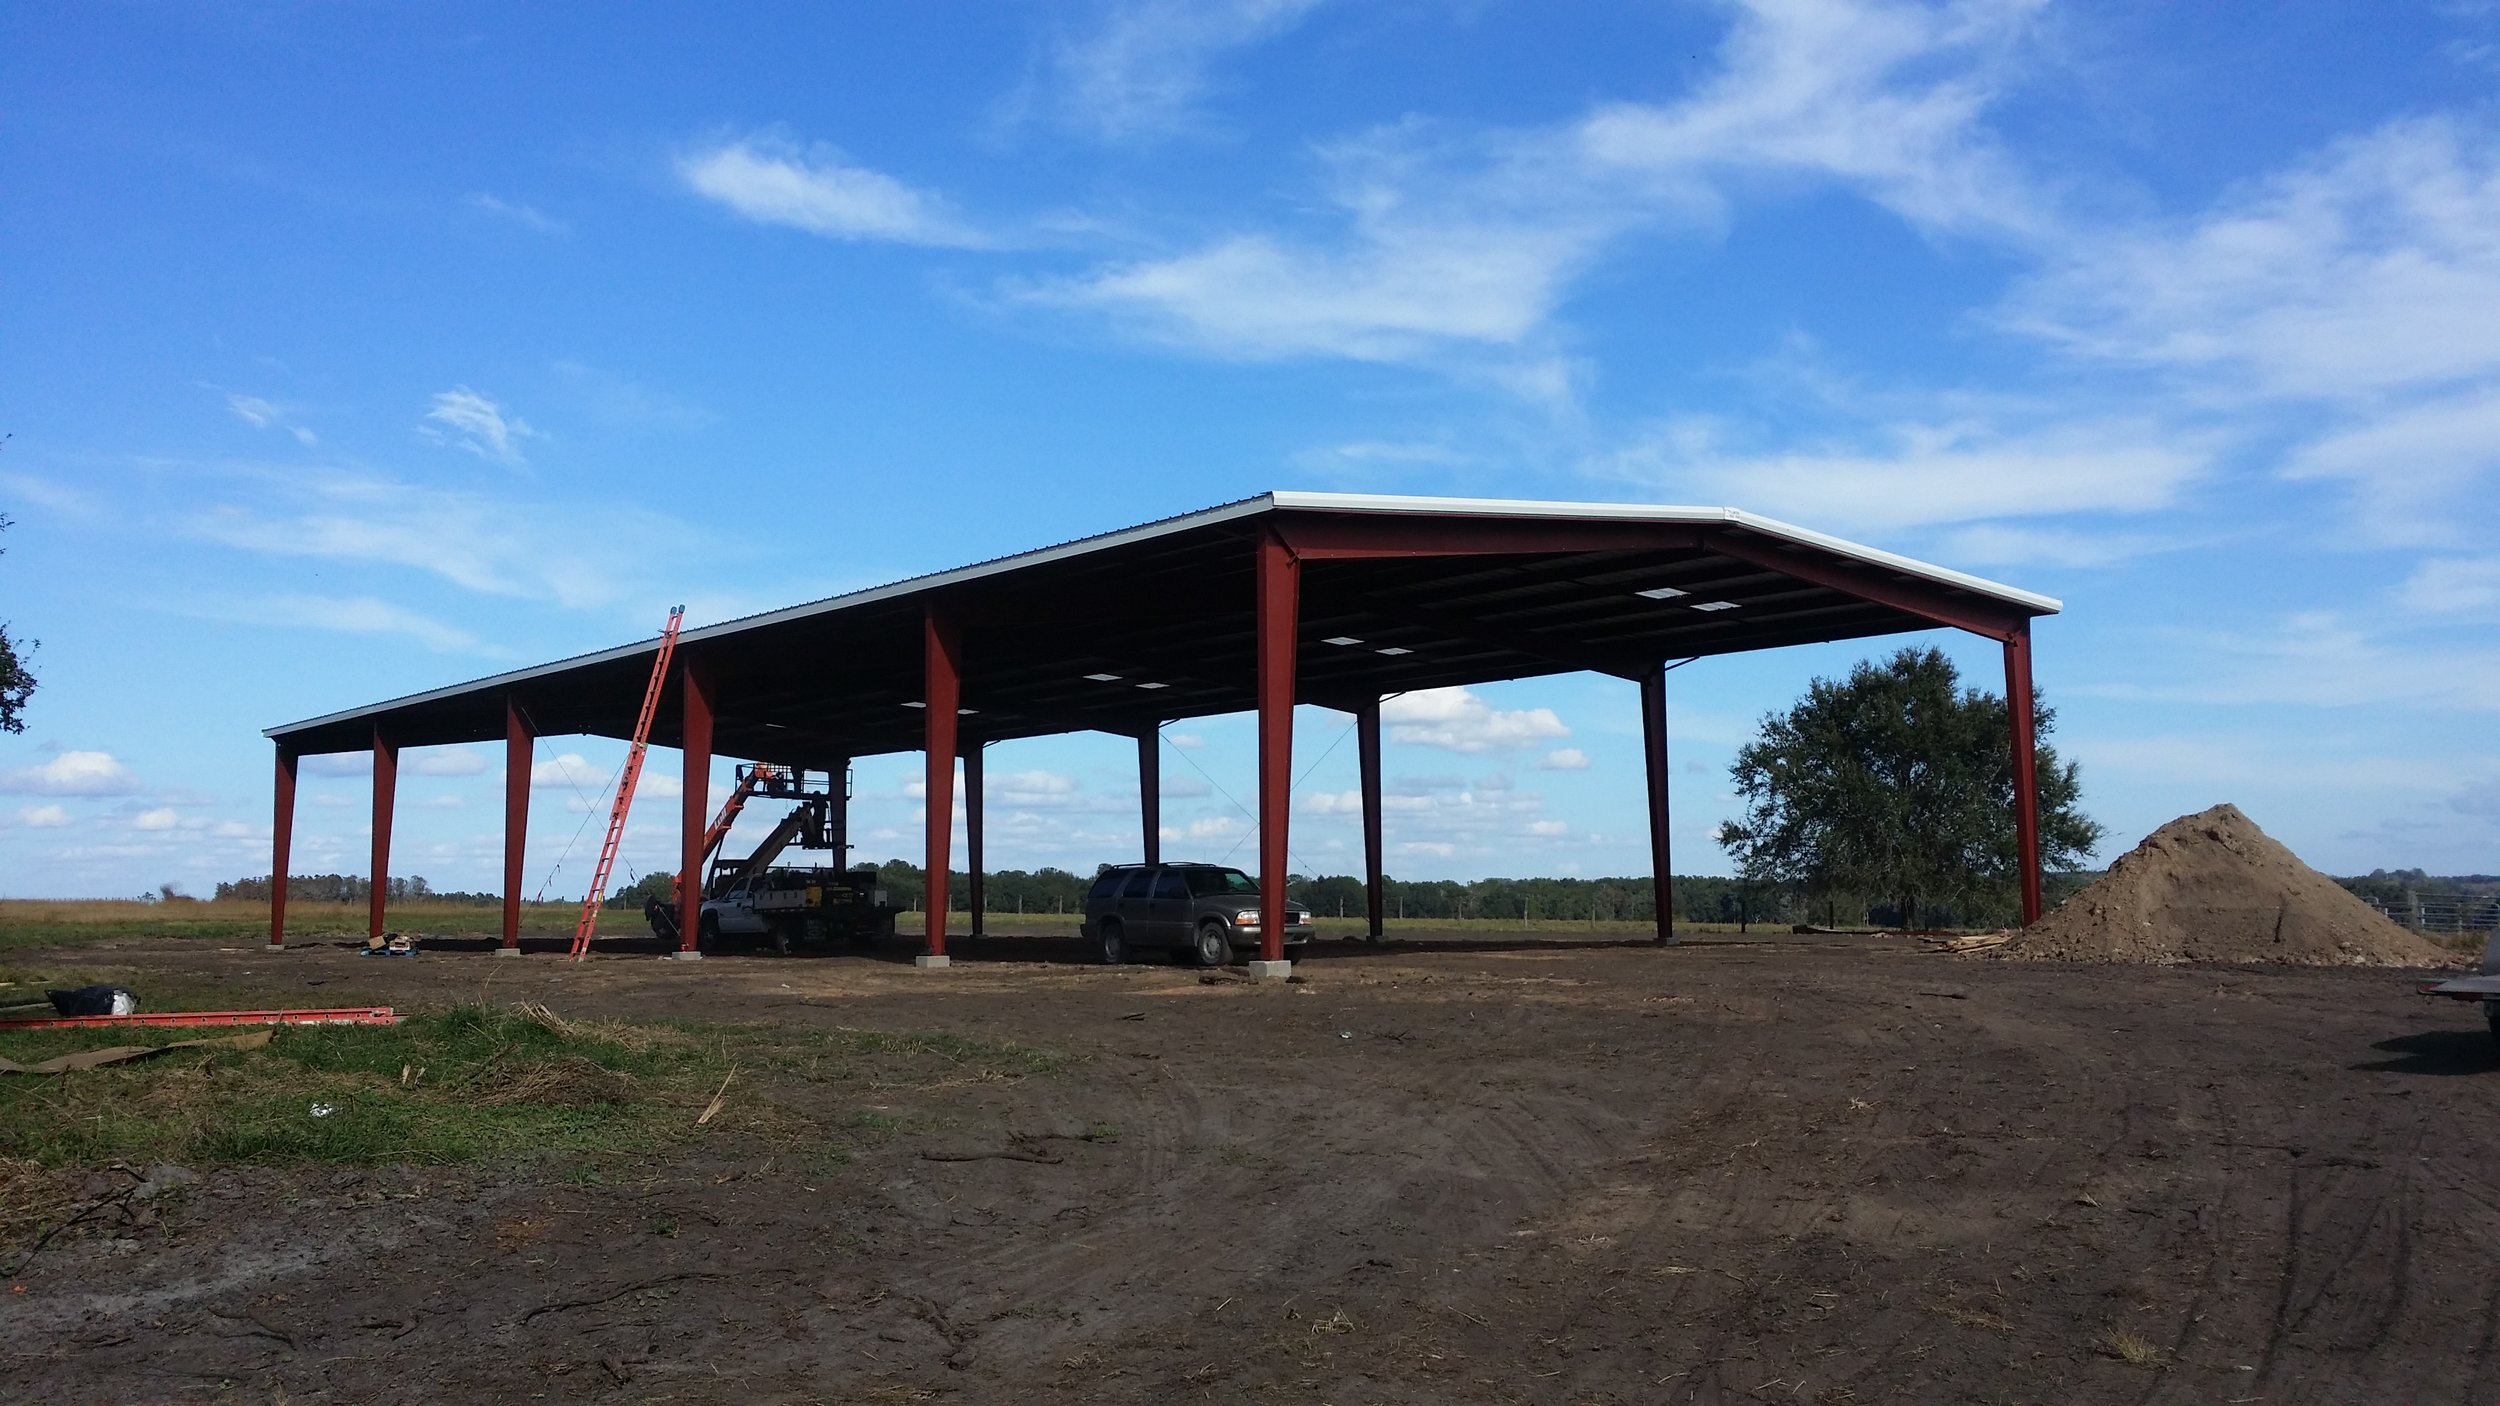 The pole barn we use for storing tractors and other equipment.